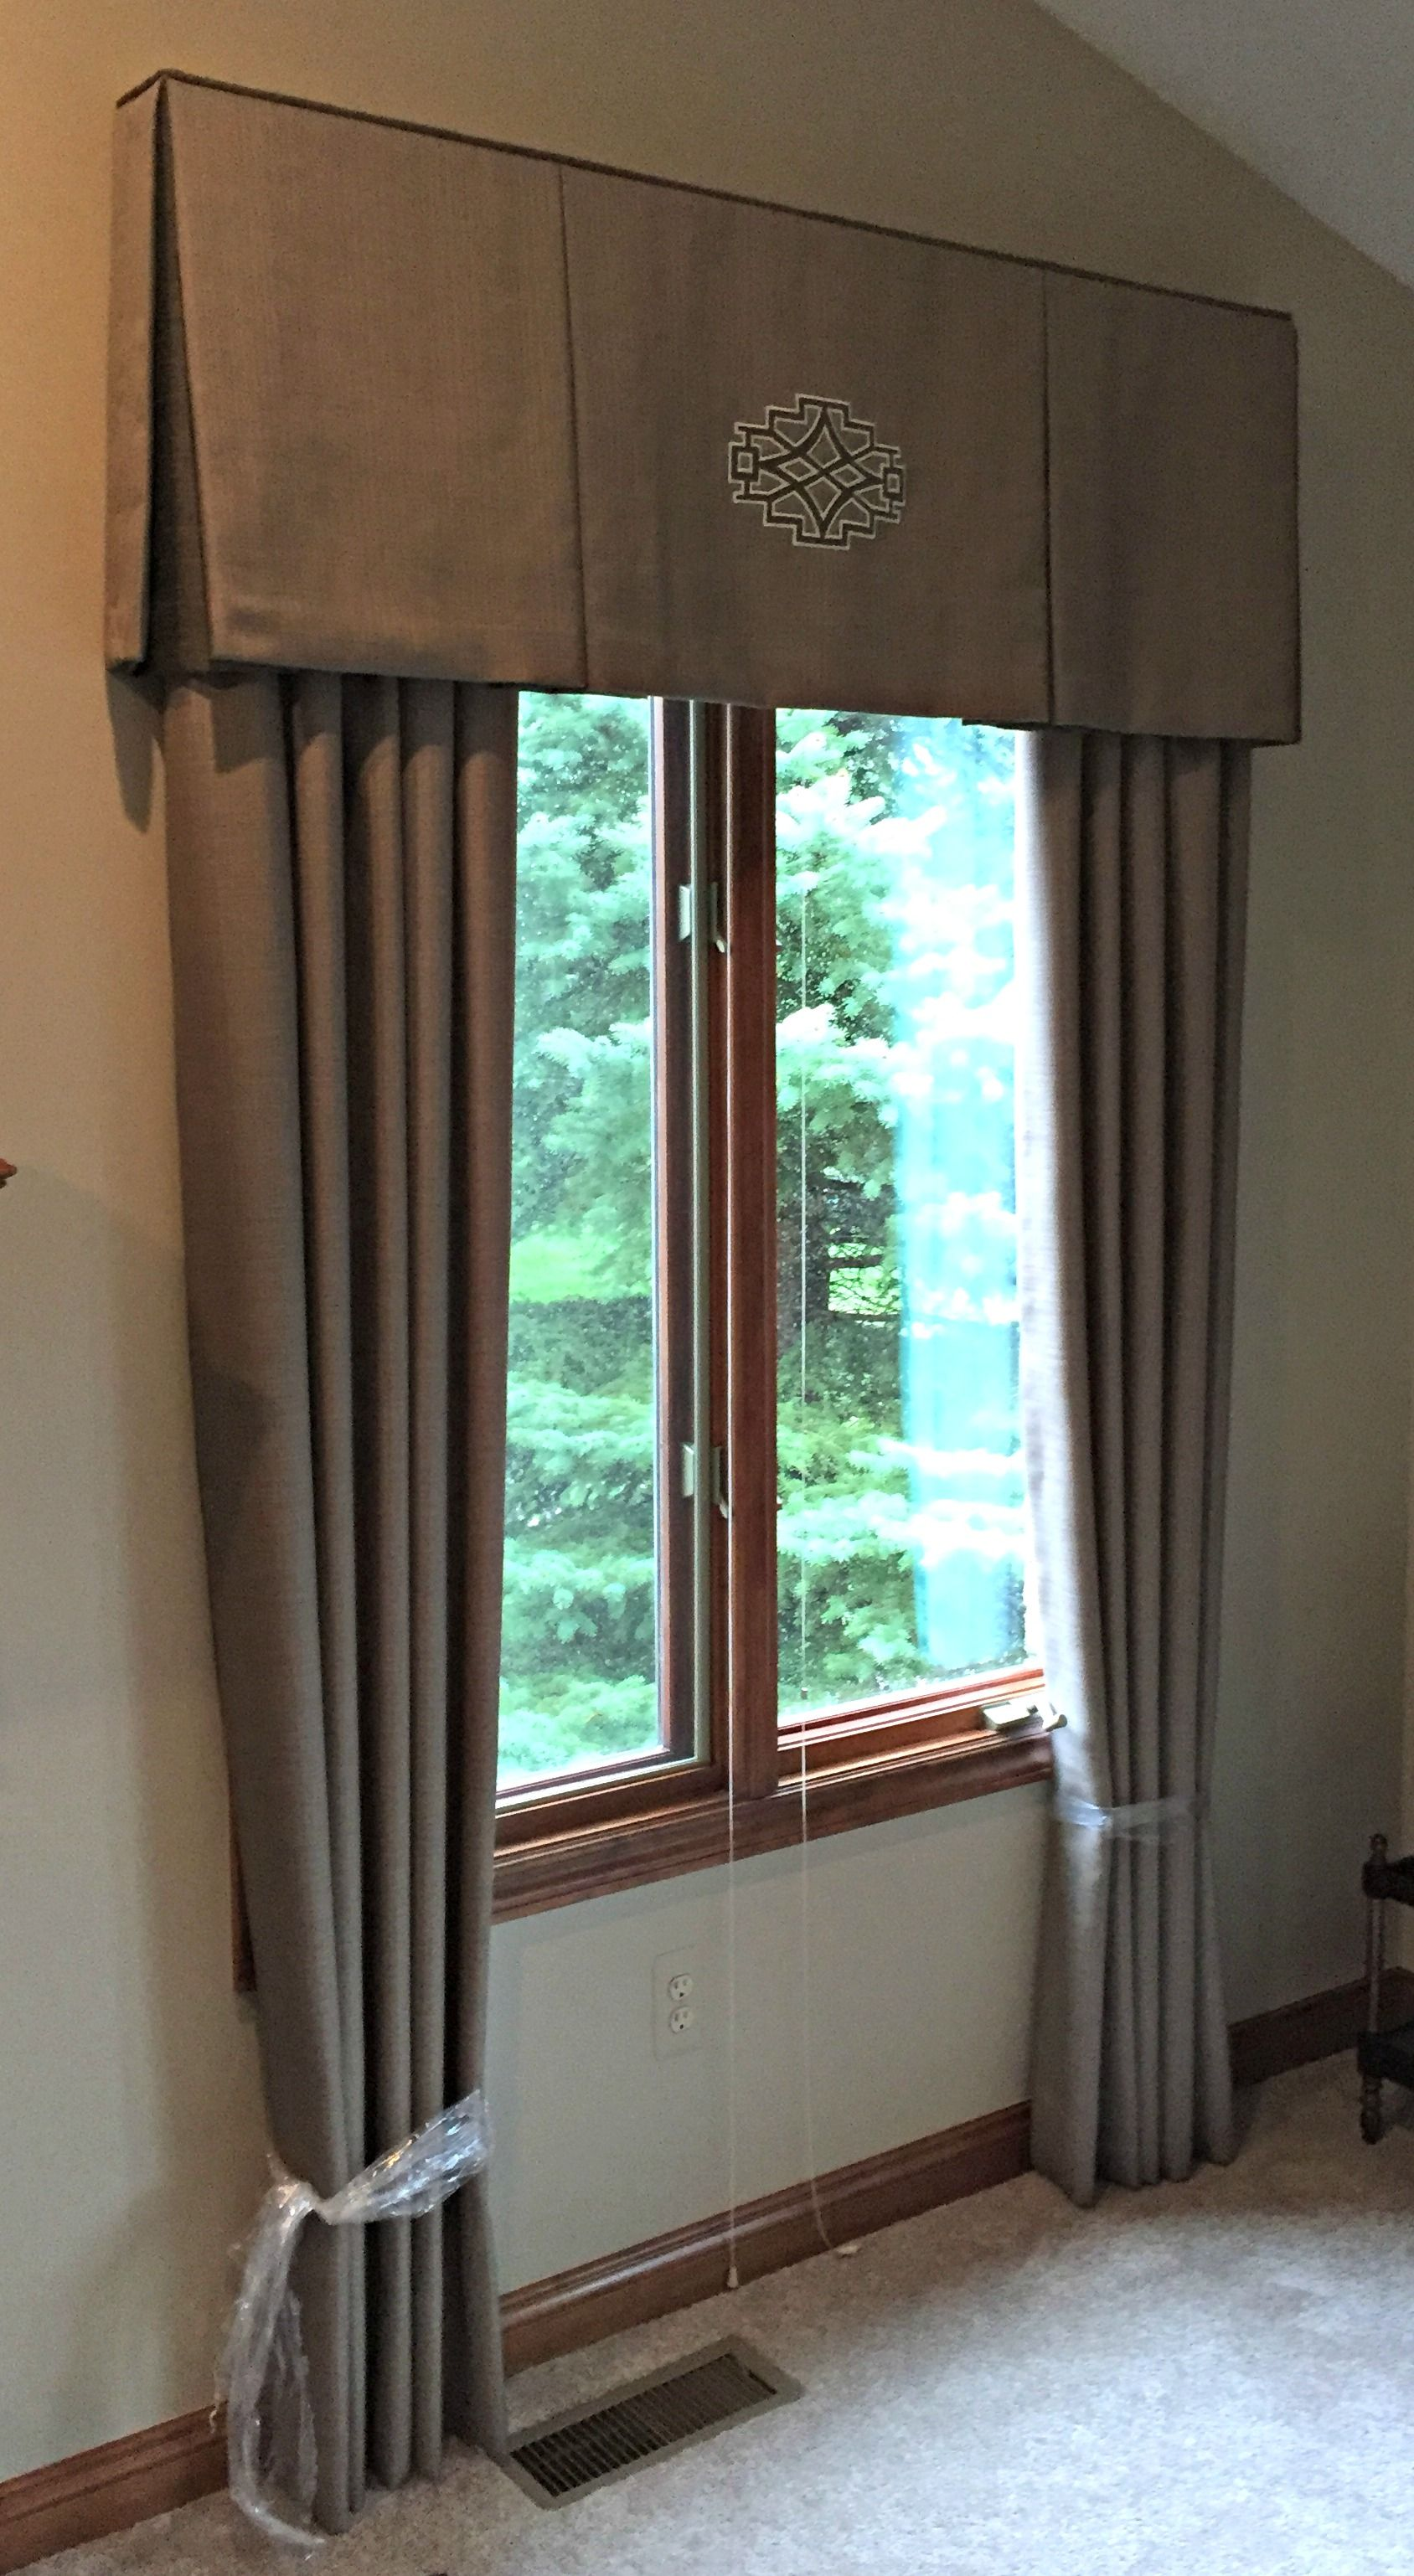 living room window valance ideas%0A We fabricated these taupe drapery panels with matching valances for two  windows in this living room